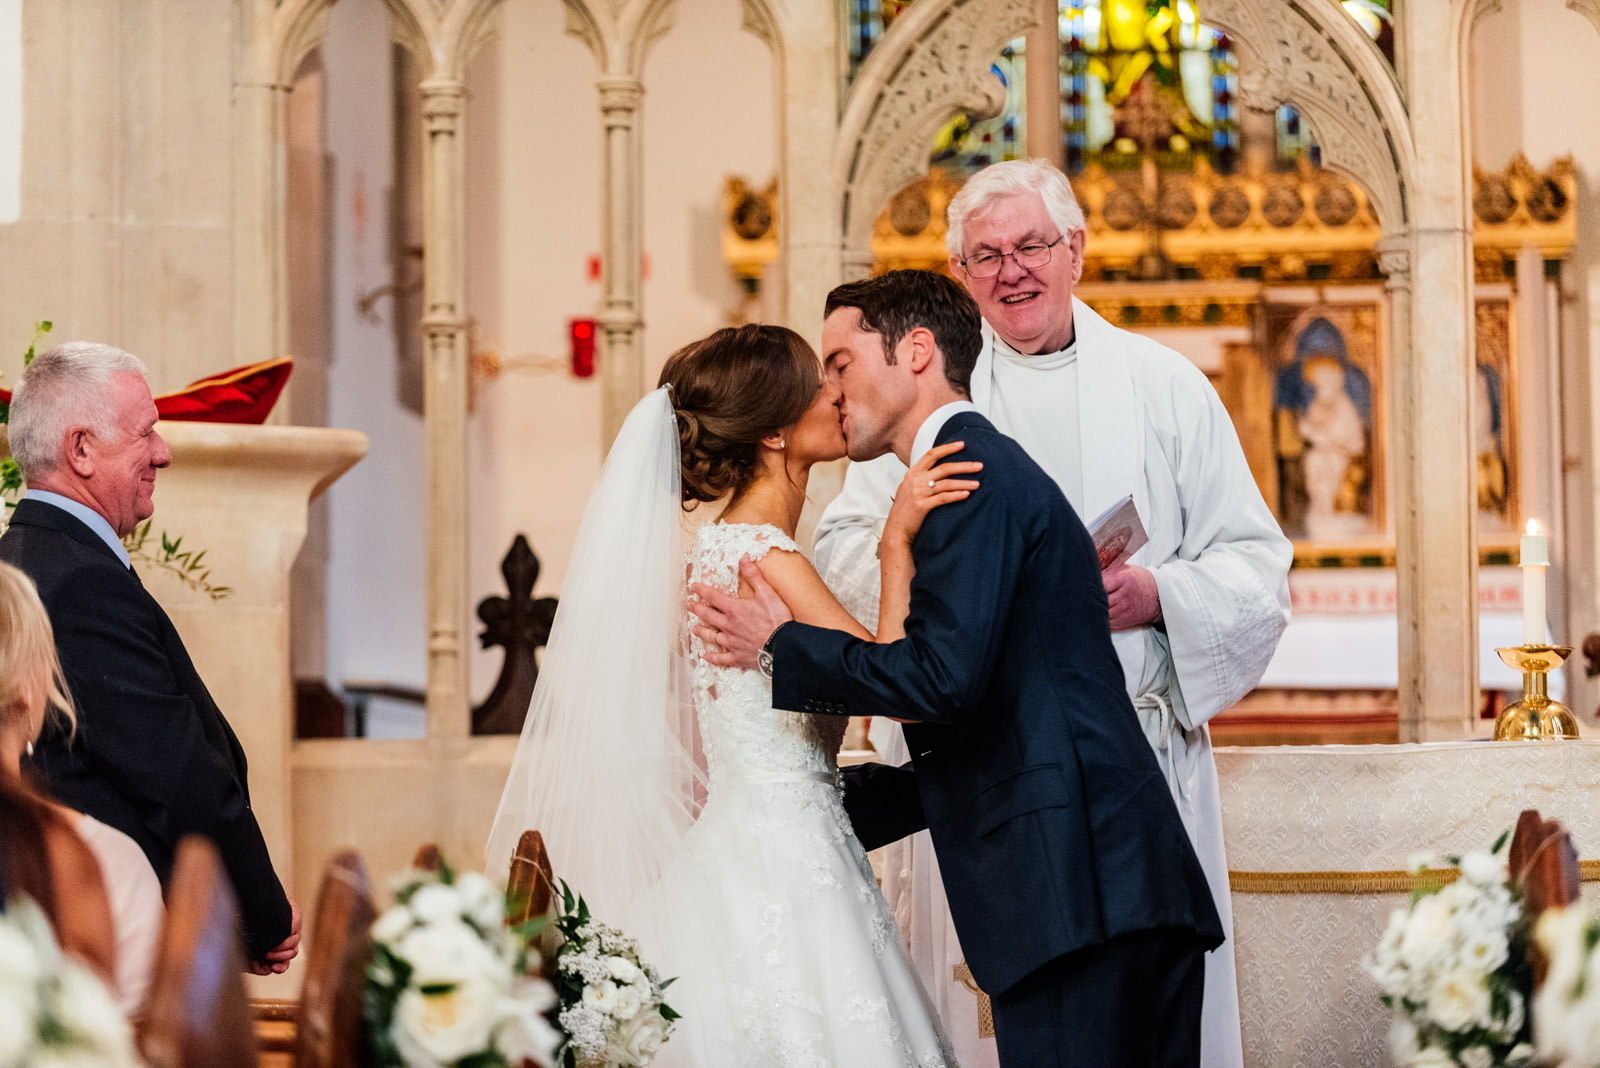 First kiss of bride and groom at church wedding